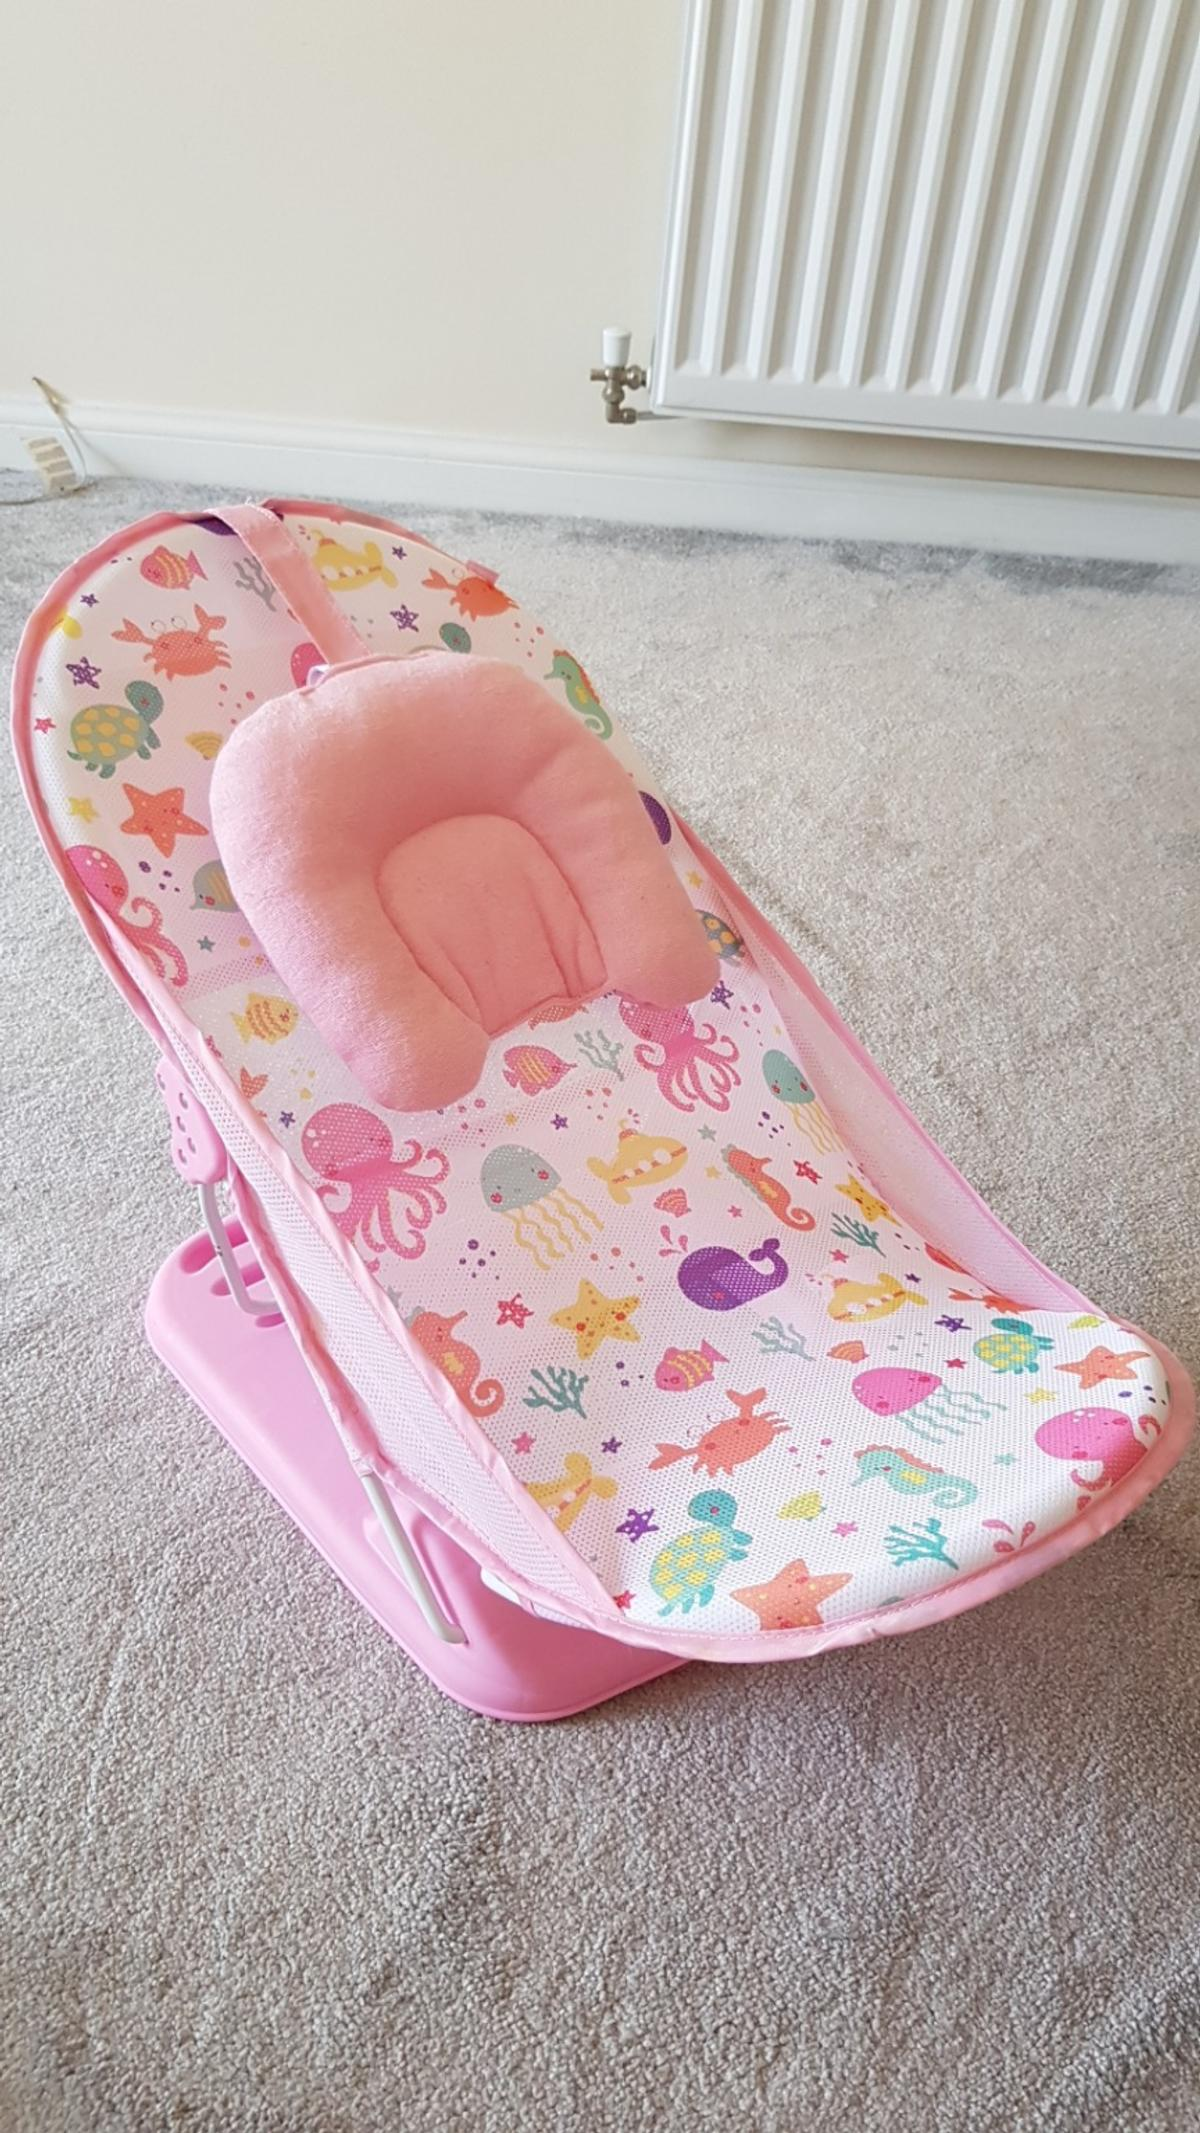 Mothercare Baby Bath Chair Seat In B97 Redditch For 5 00